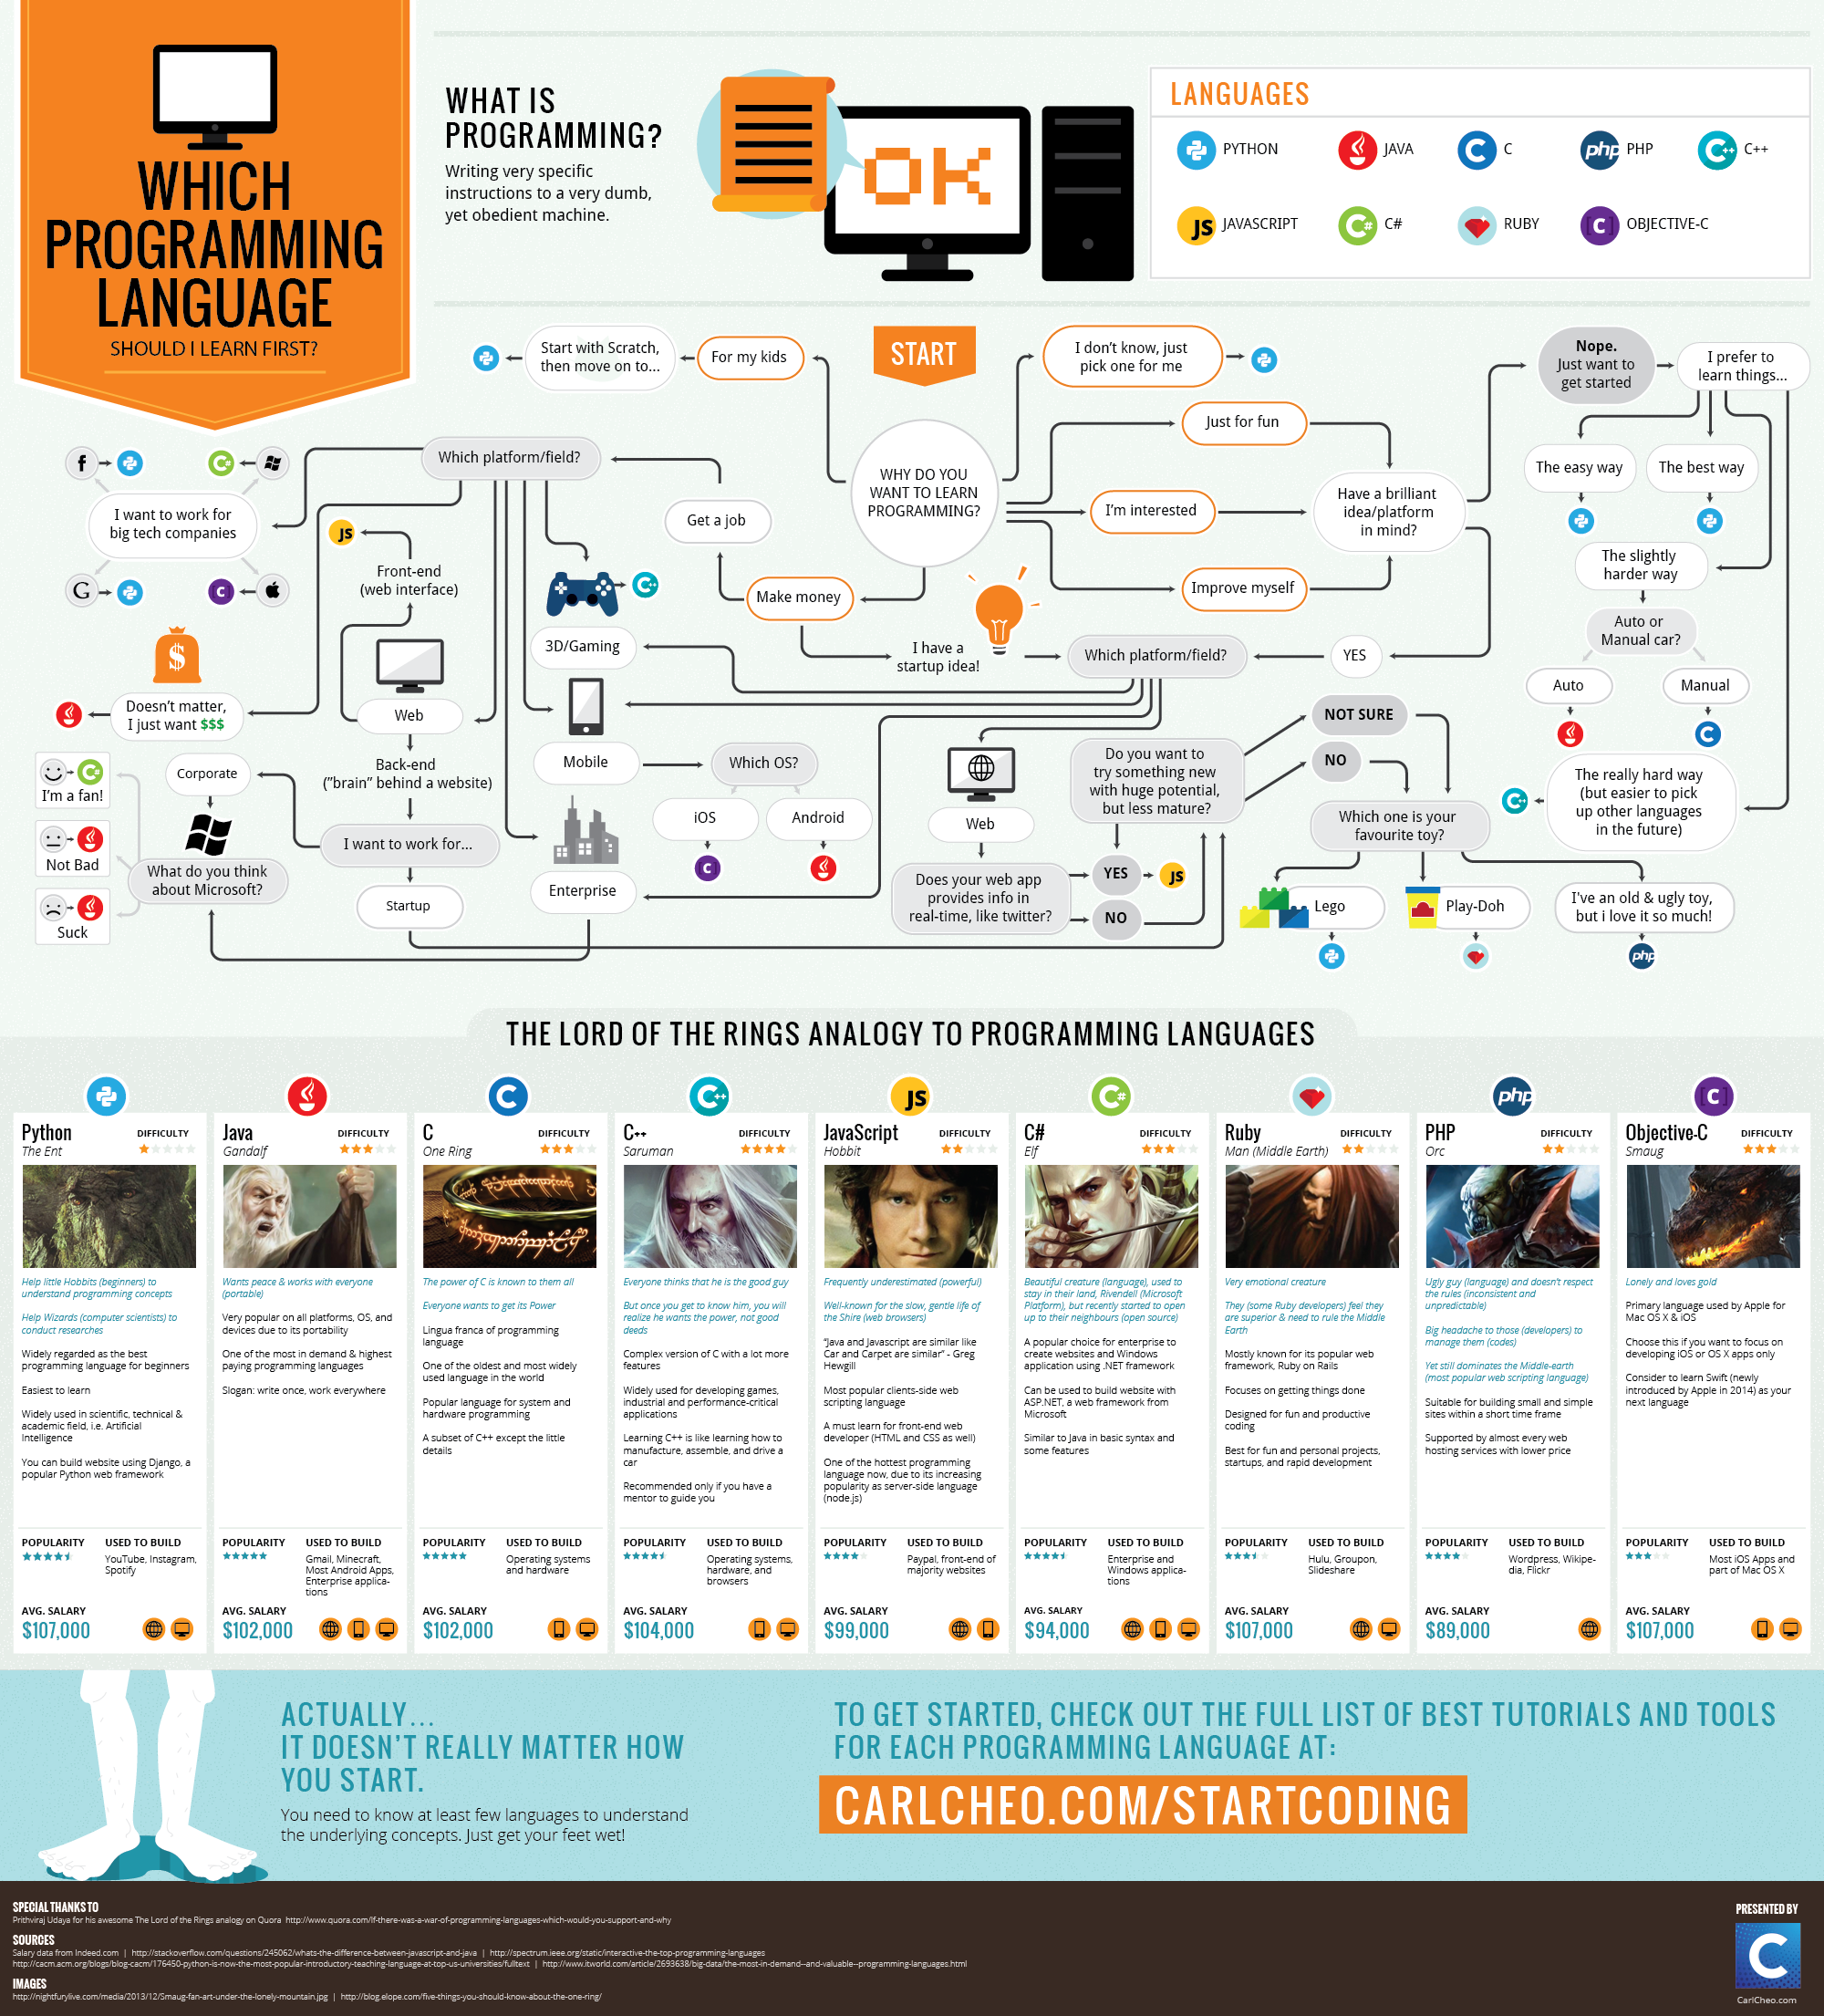 which programming language should i learn first infographic which programming language should i learn first